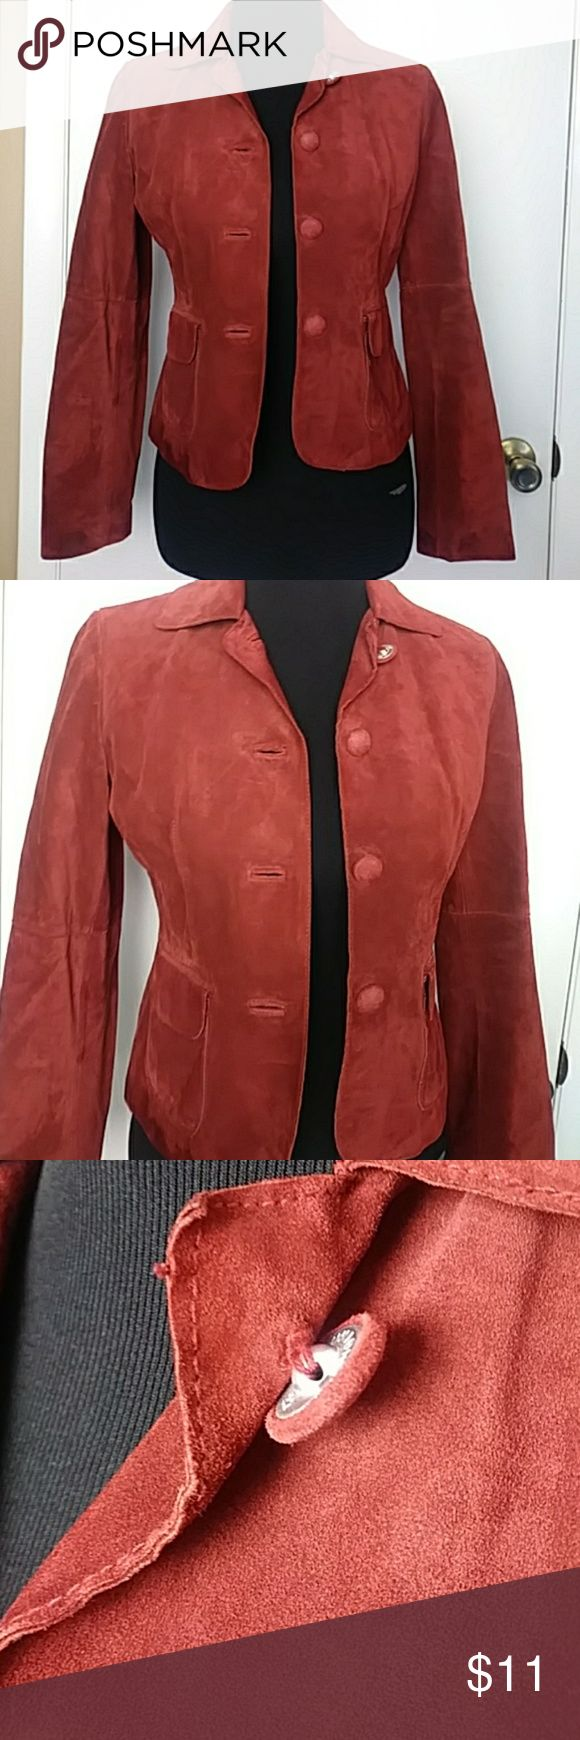 Ann Taylor 100% leather maroon blazer sz XSP Ann Taylor 100% leather maroon blazer sz extra small petites. Floopy button on top, shown in pic Ann Taylor Jackets & Coats Blazers